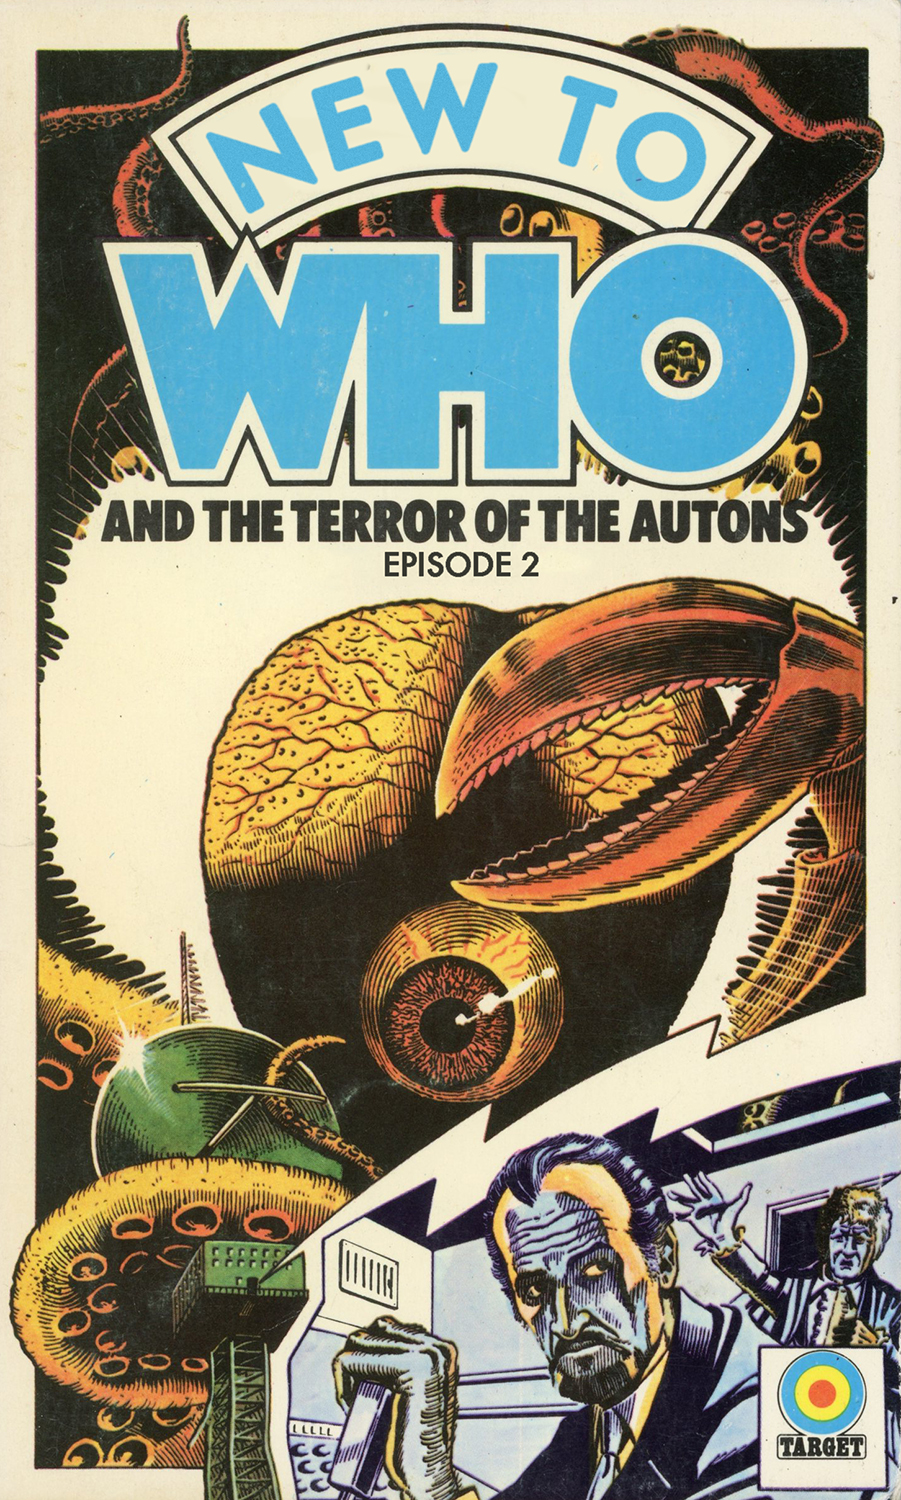 Original cover art for the 1975 Target novelisation by Peter Brookes